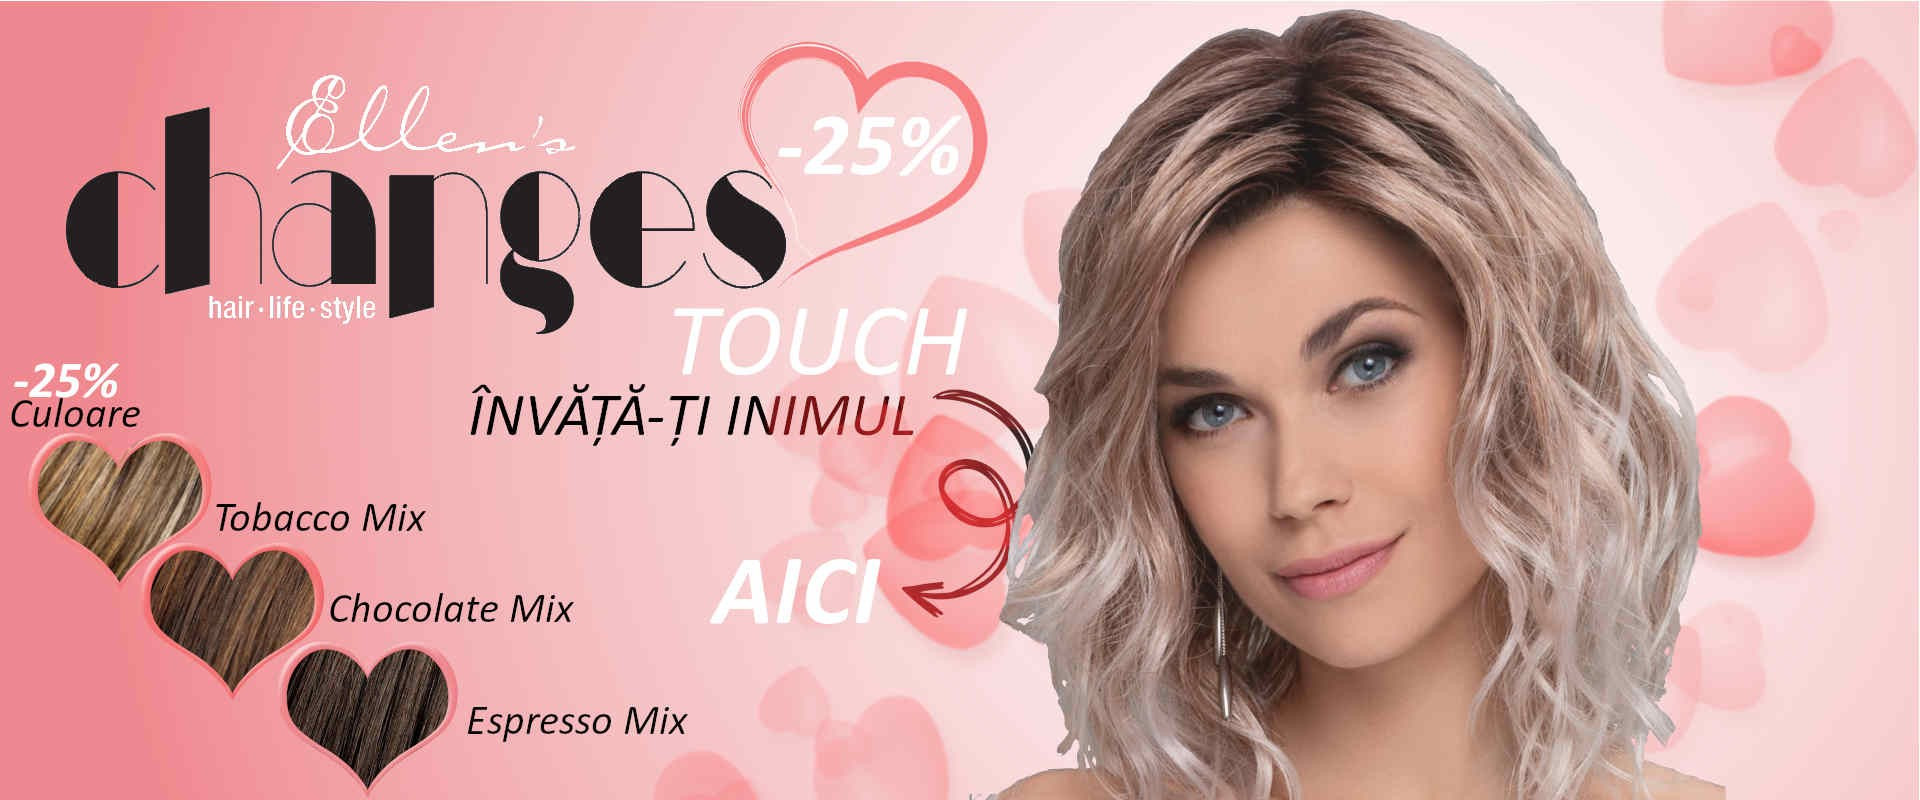 -25% TOUCH